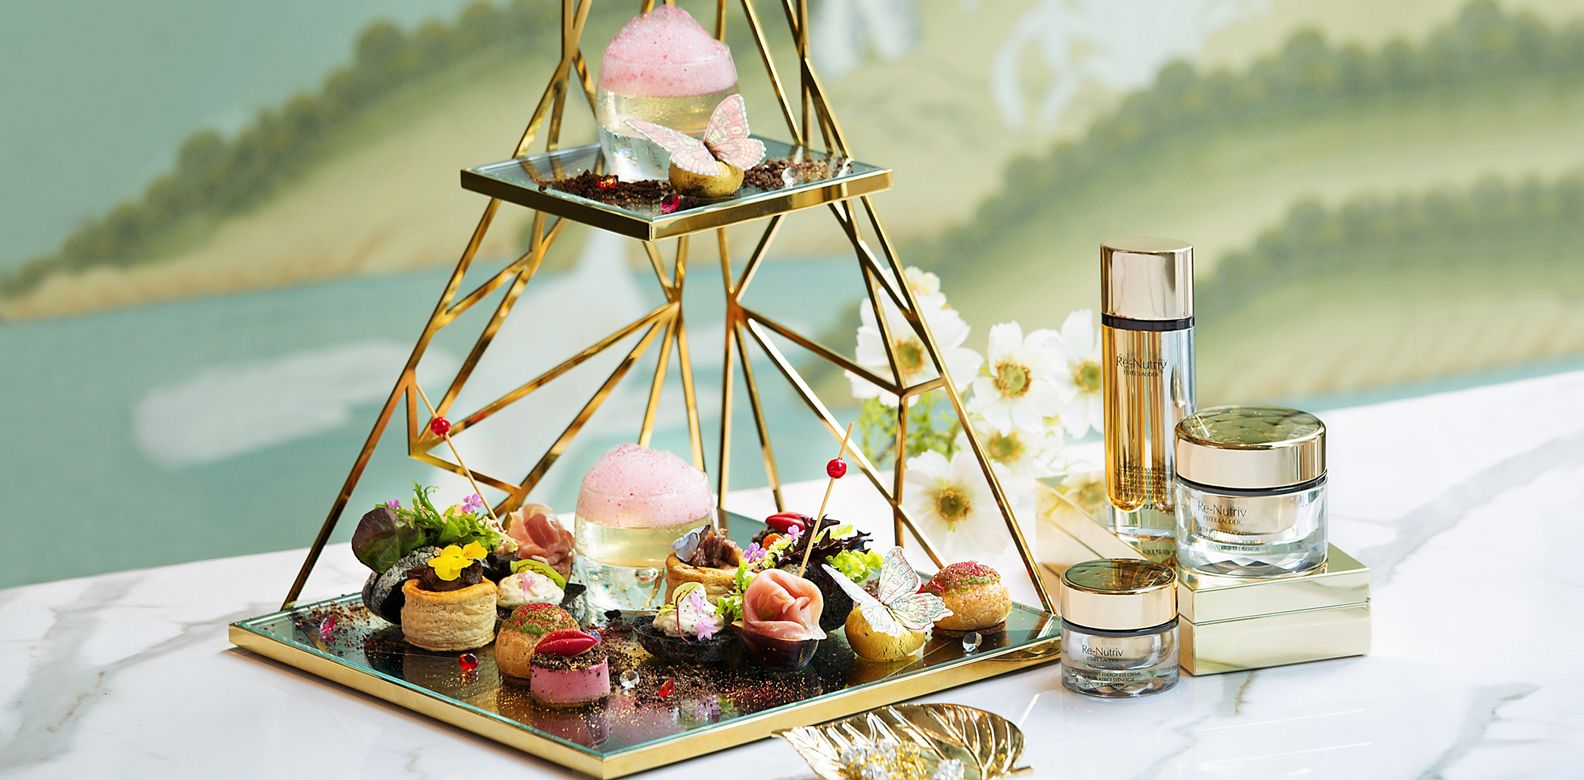 Gradini Presents Estée Lauder Black Truffle Diamond Afternoon Tea